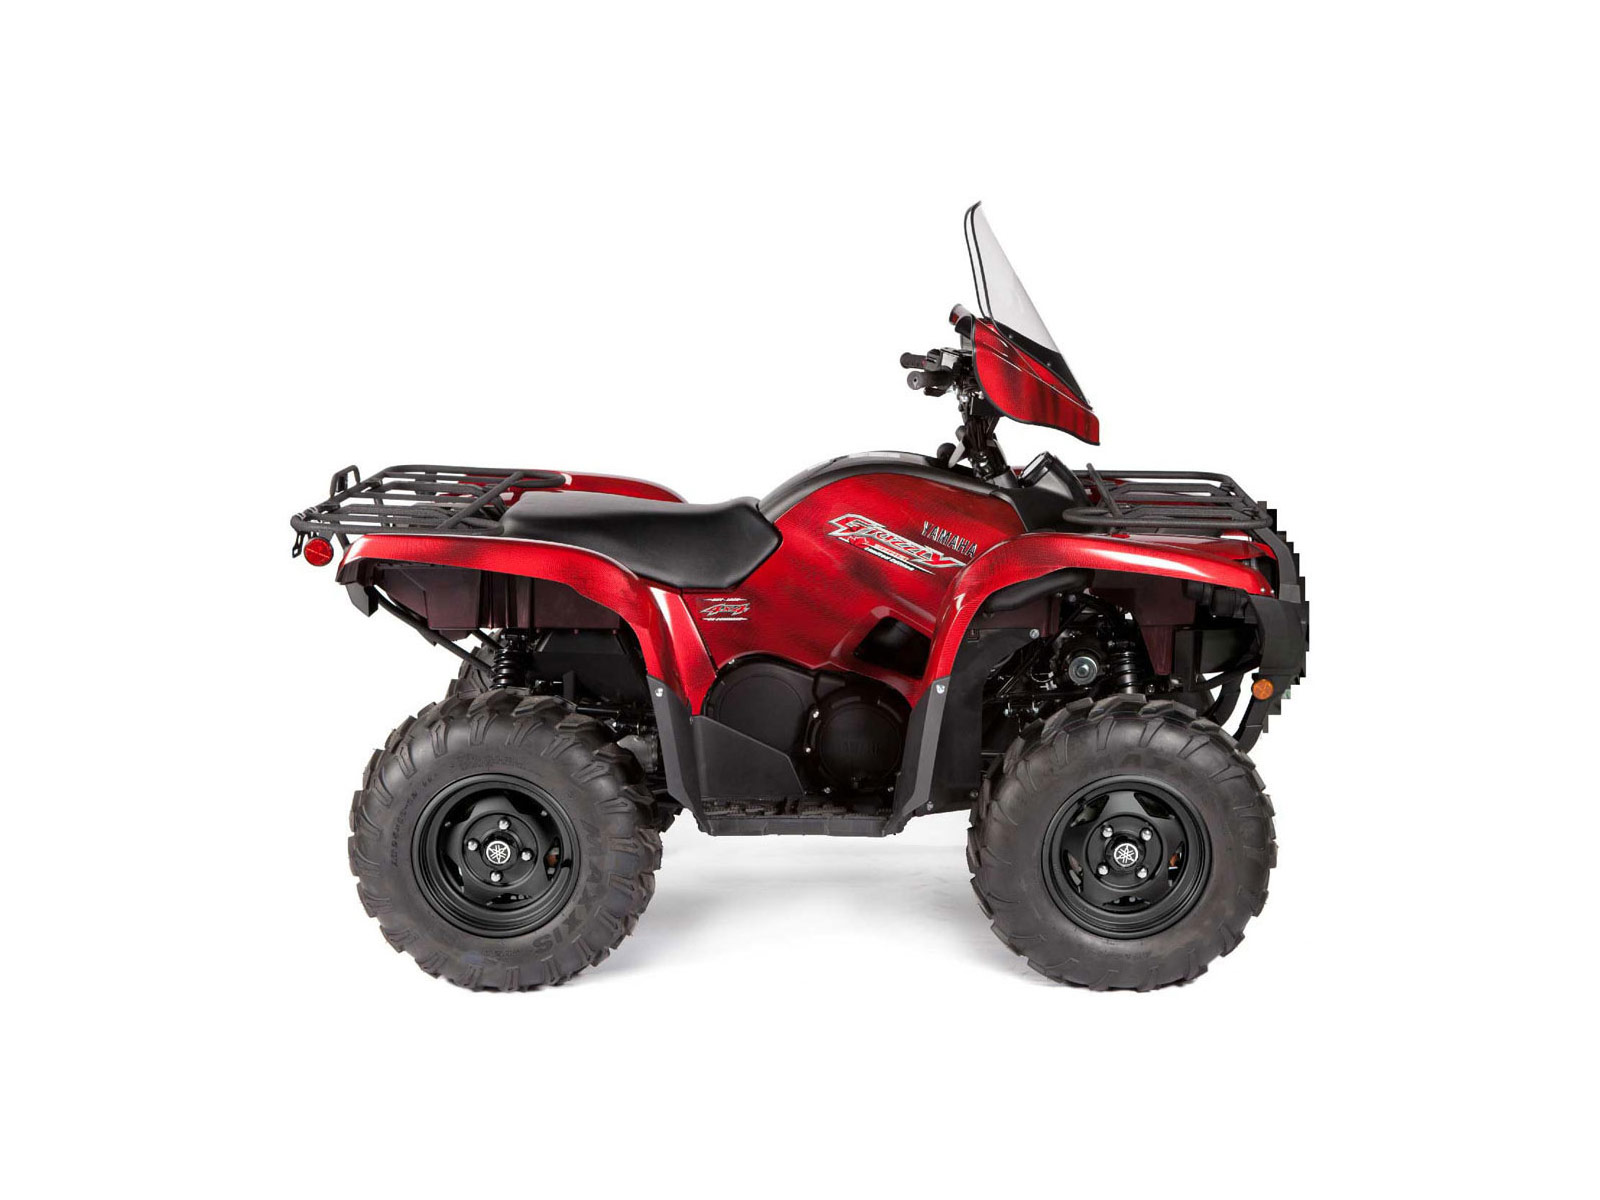 2013 grizzly 700 fi auto 4x4 eps le yamaha pictures. Black Bedroom Furniture Sets. Home Design Ideas